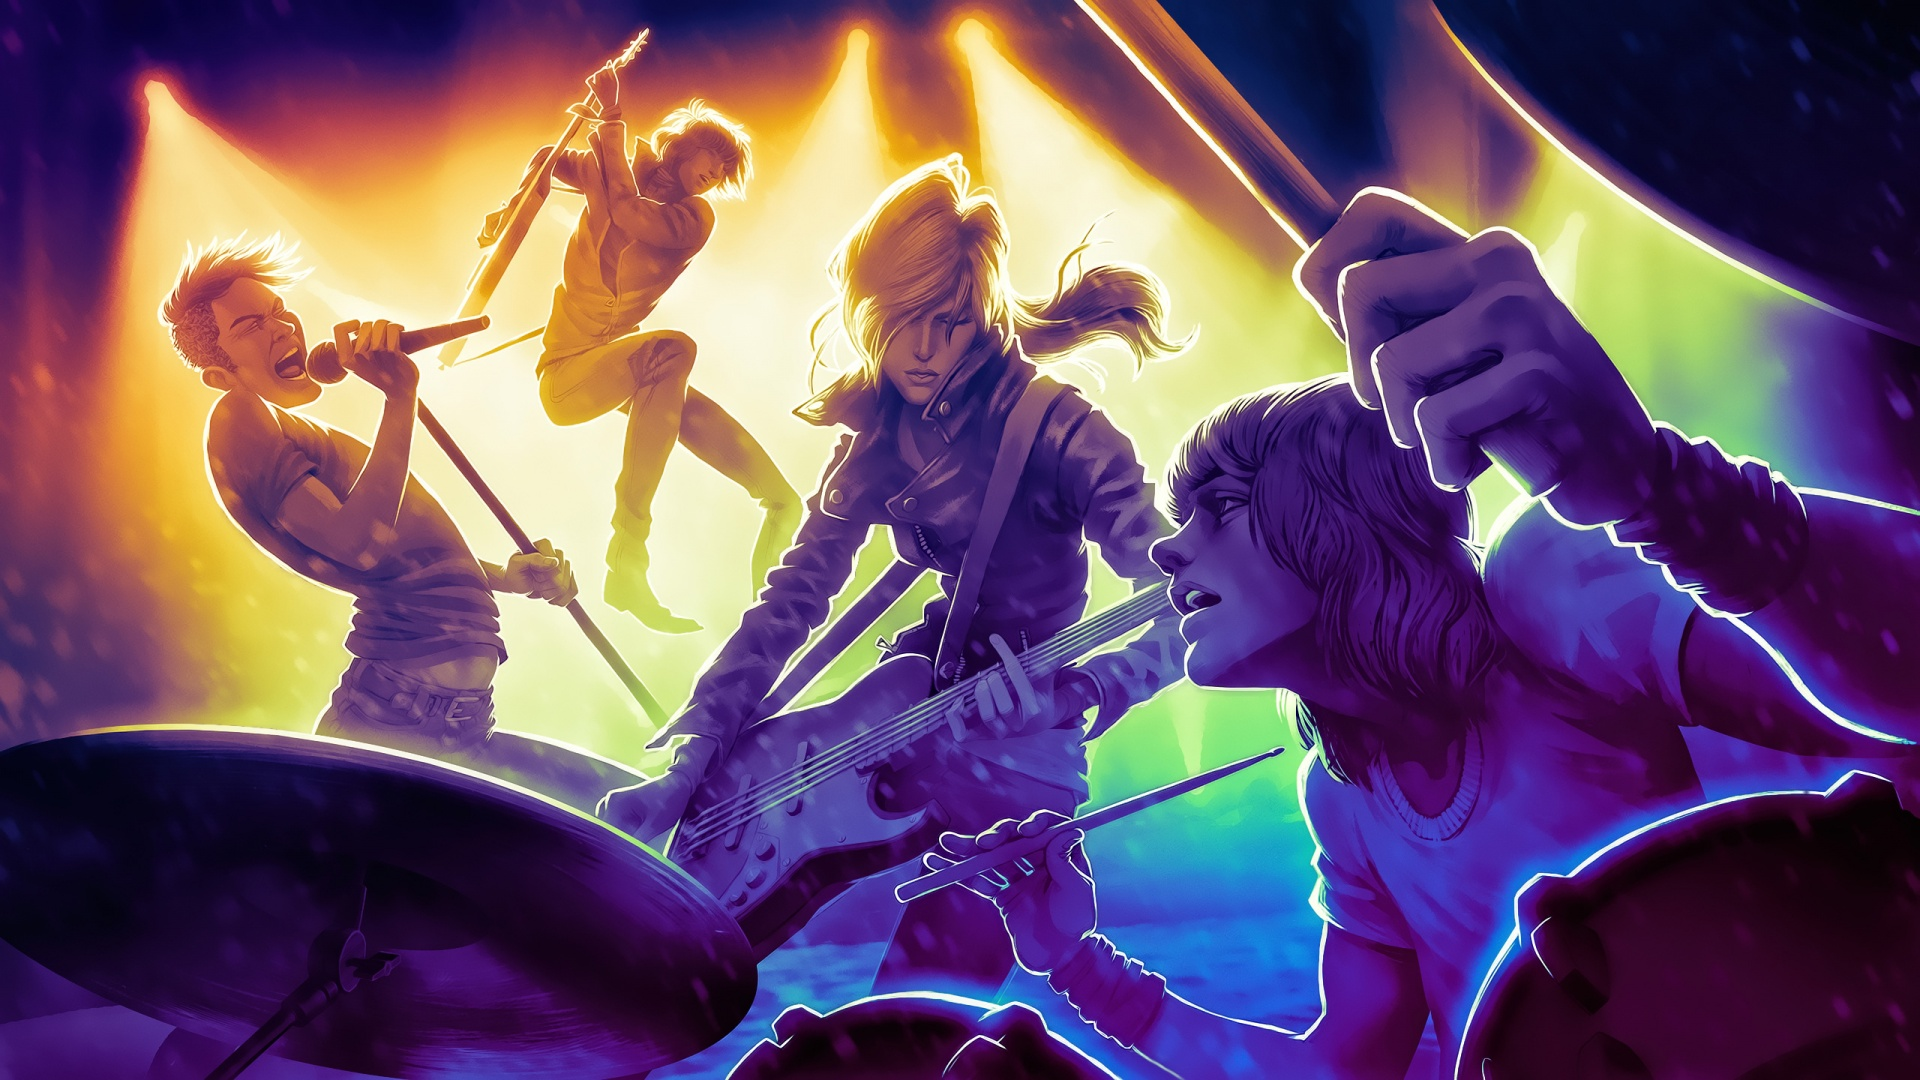 Rock Band 4 2015 Wallpapers   1920x1080   577742 1920x1080